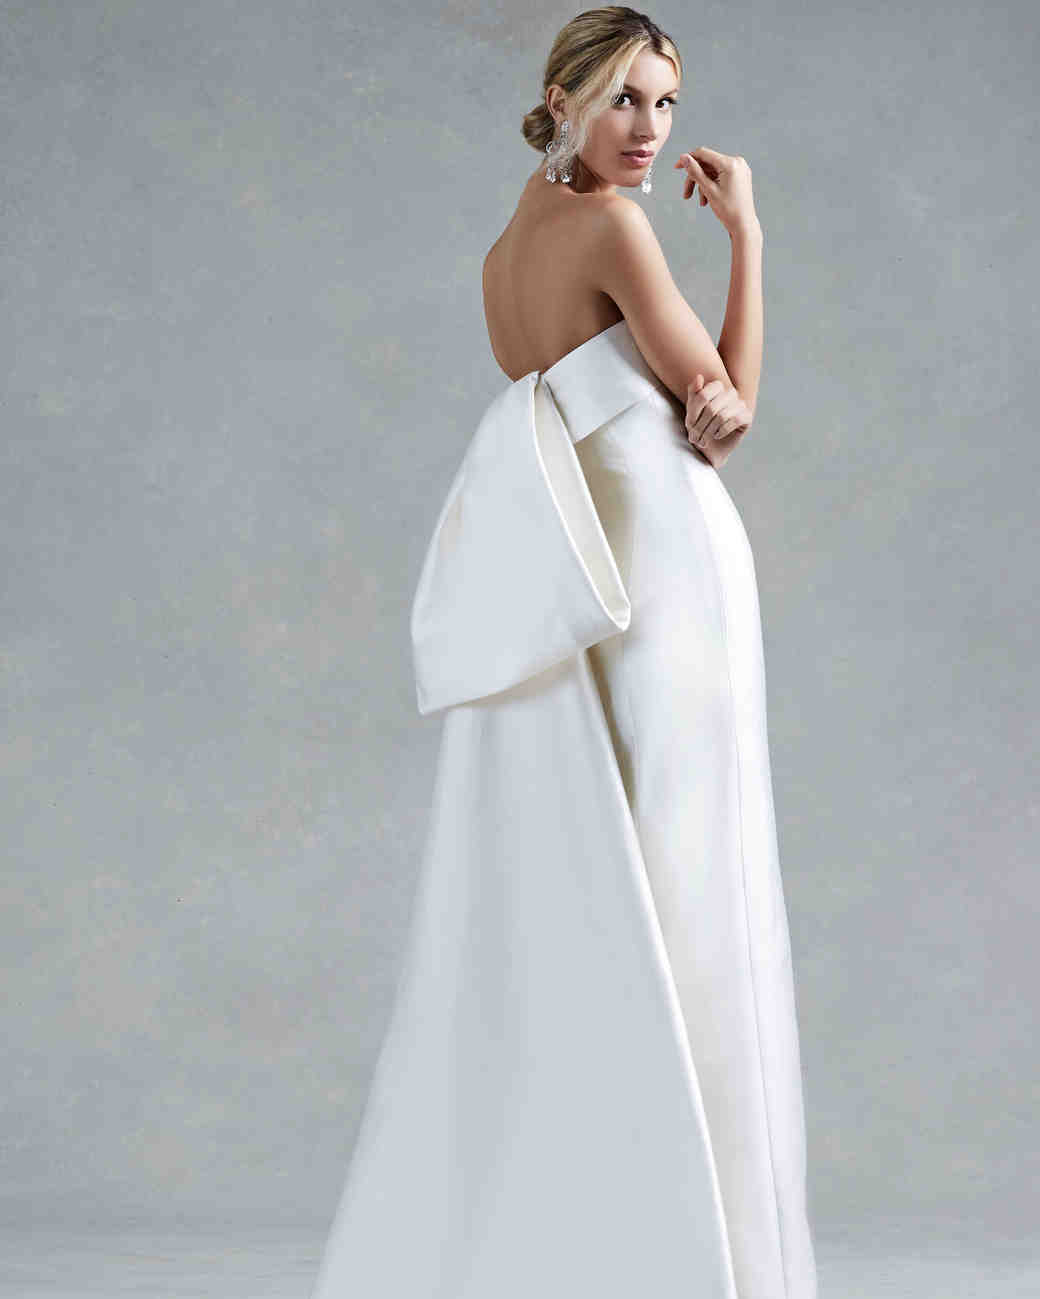 Great Wedding Dress With Bows